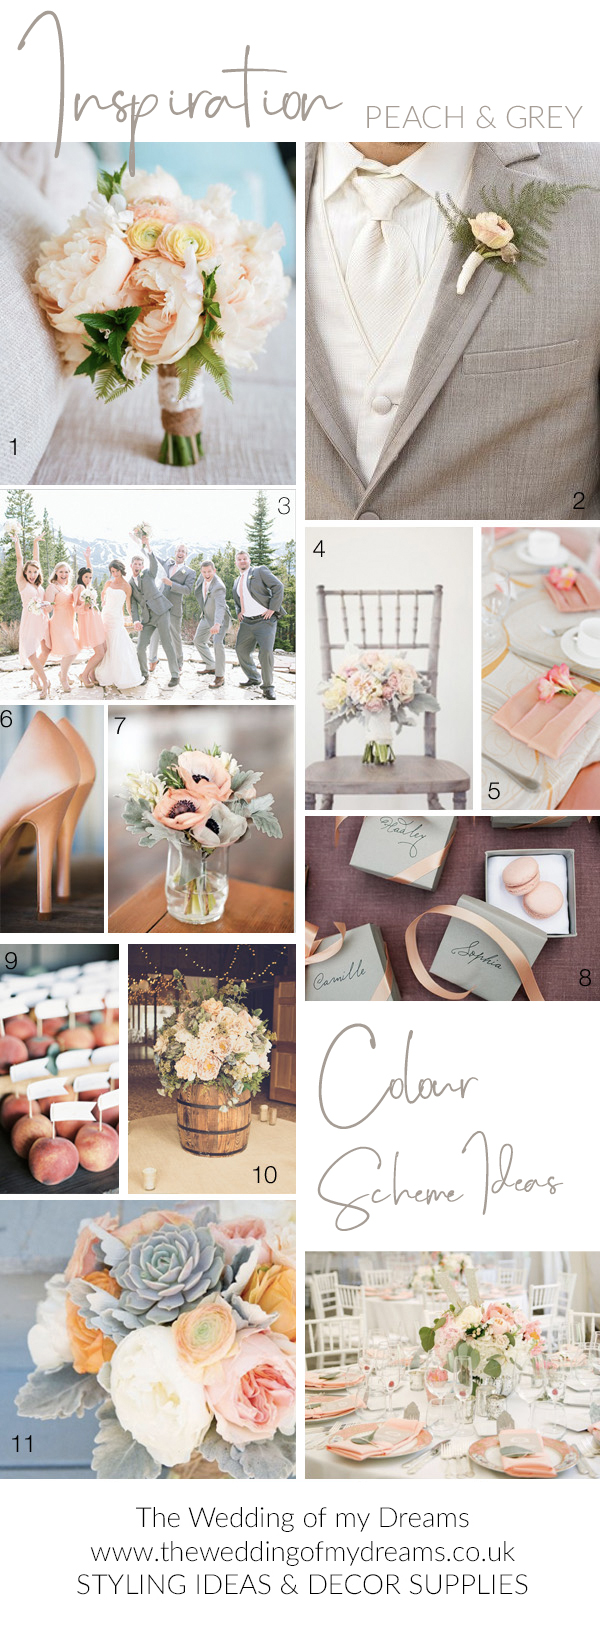 Peach and grey wedding colour scheme ideas